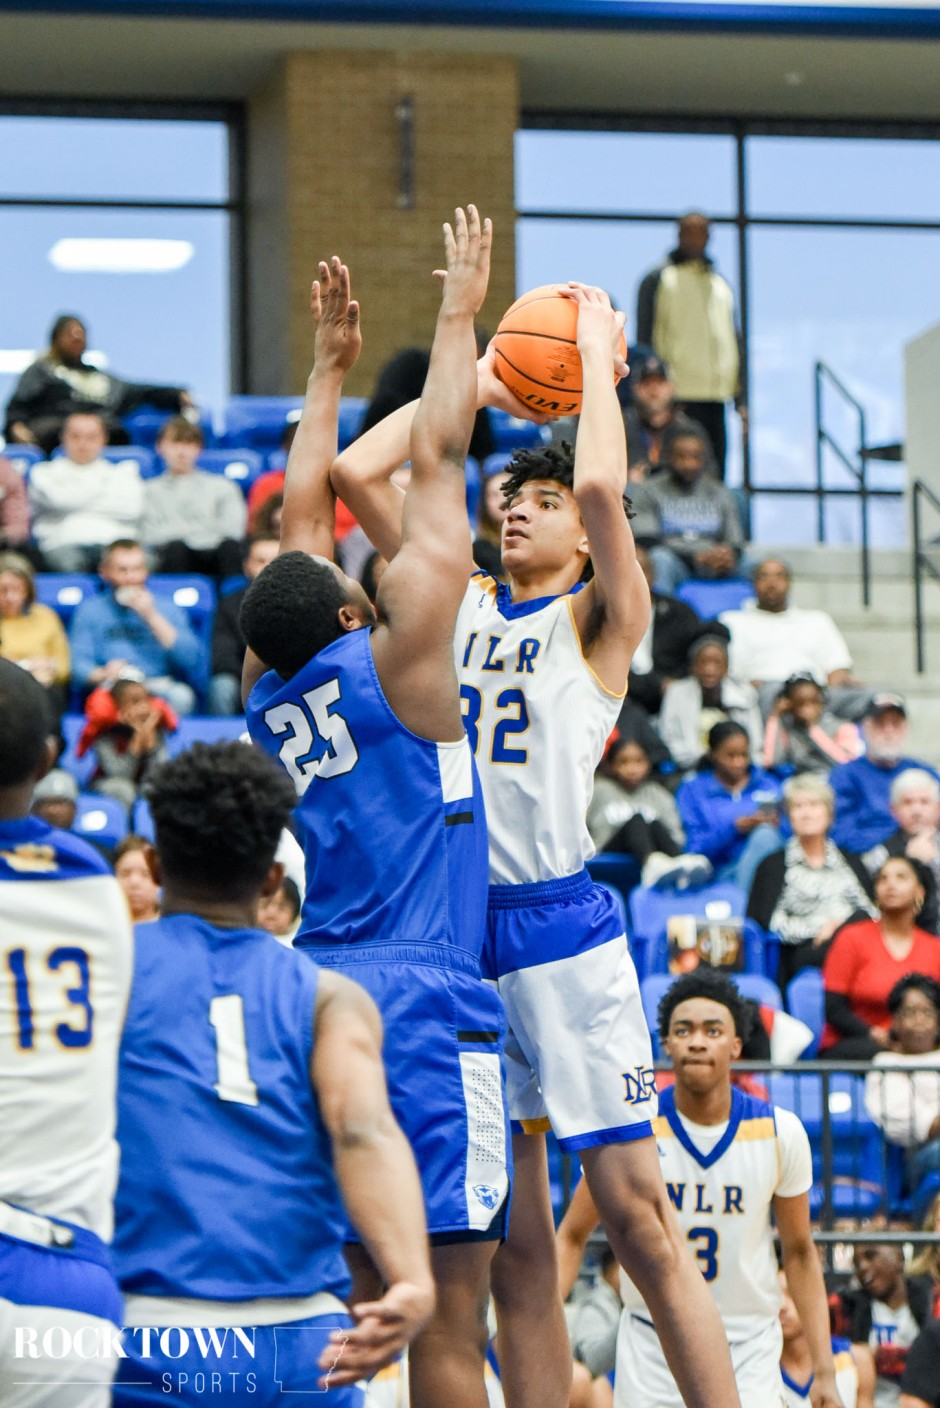 NLR_conway_bball_2020(i)-66